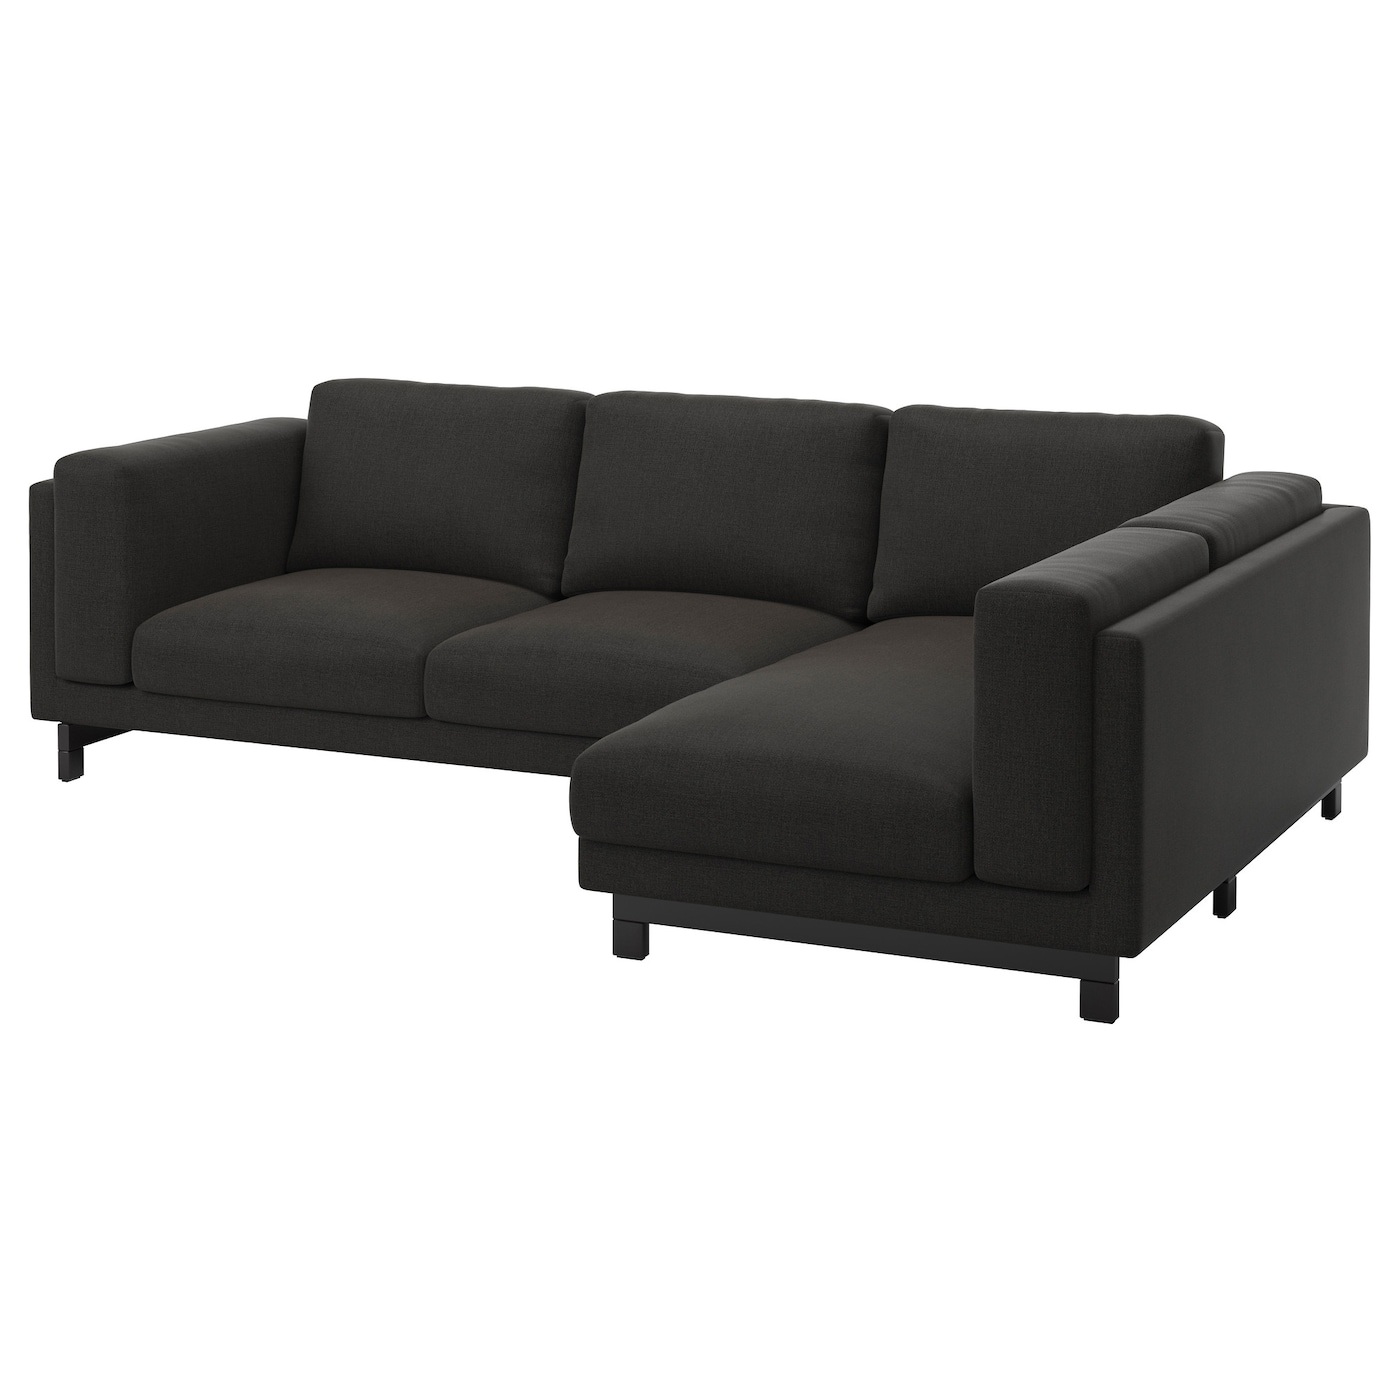 3 seater sofa ikea for 3 seater couch with chaise